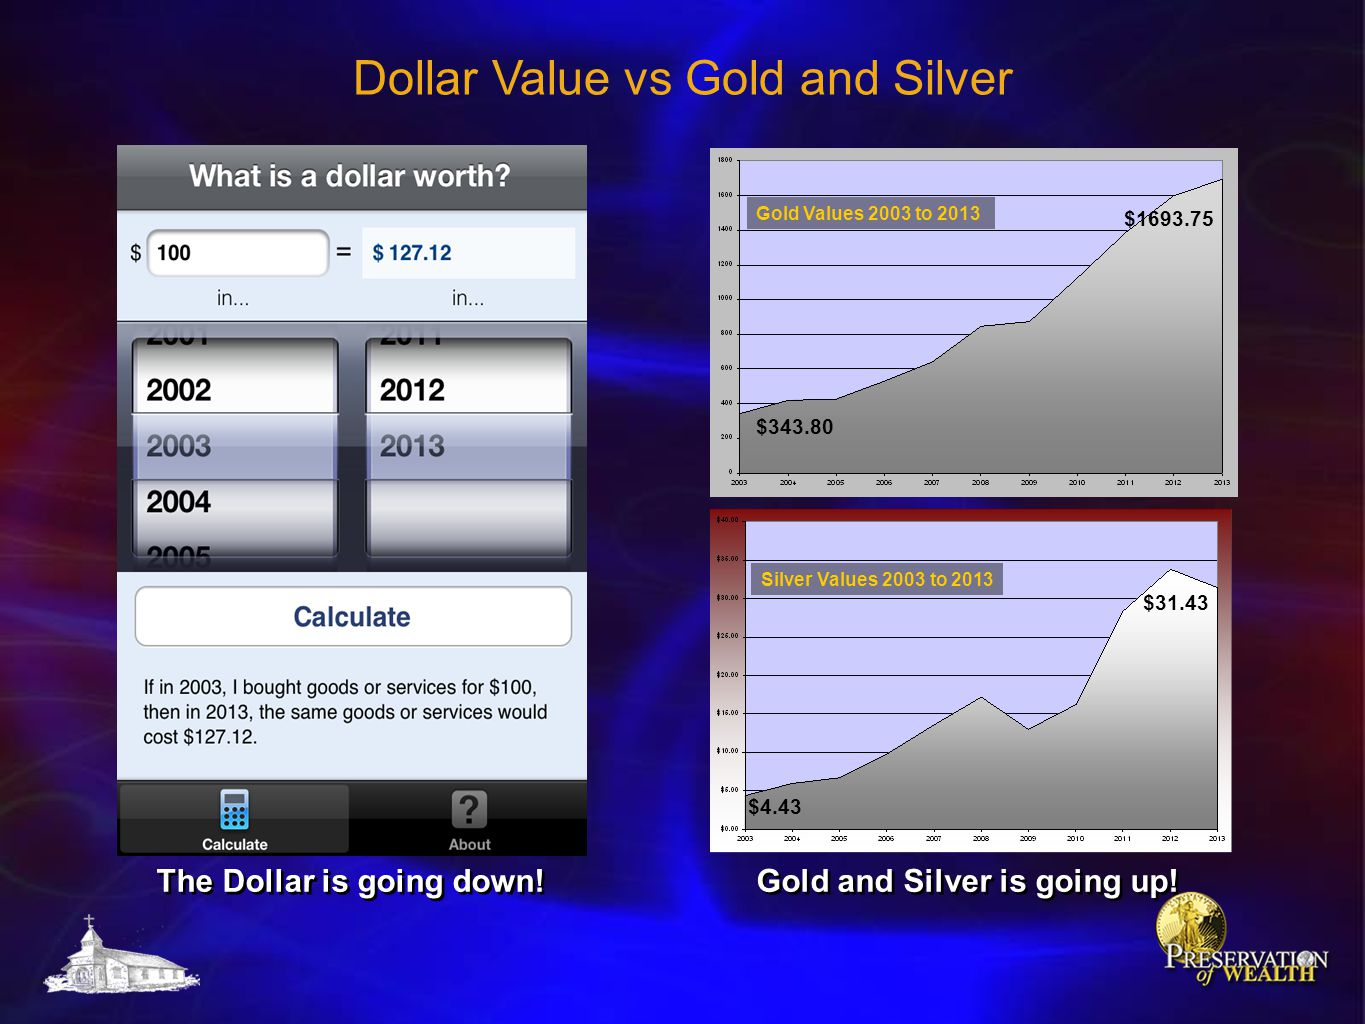 Dollar Value vs Gold and Silver